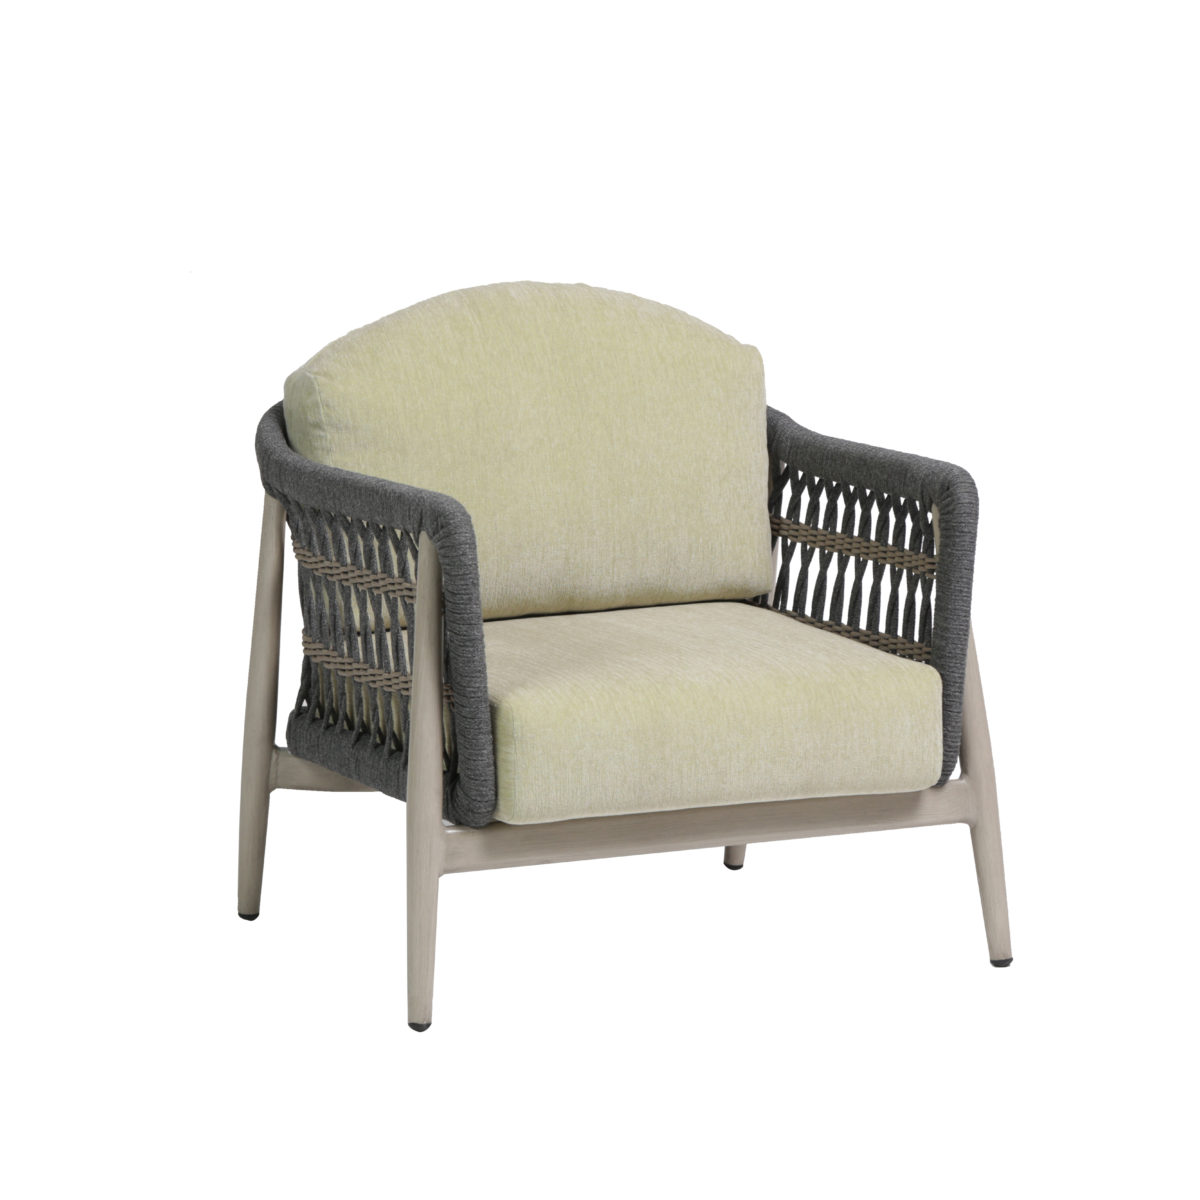 The Coconut Grove club chair with aloe green cushions and dual rope colored design.